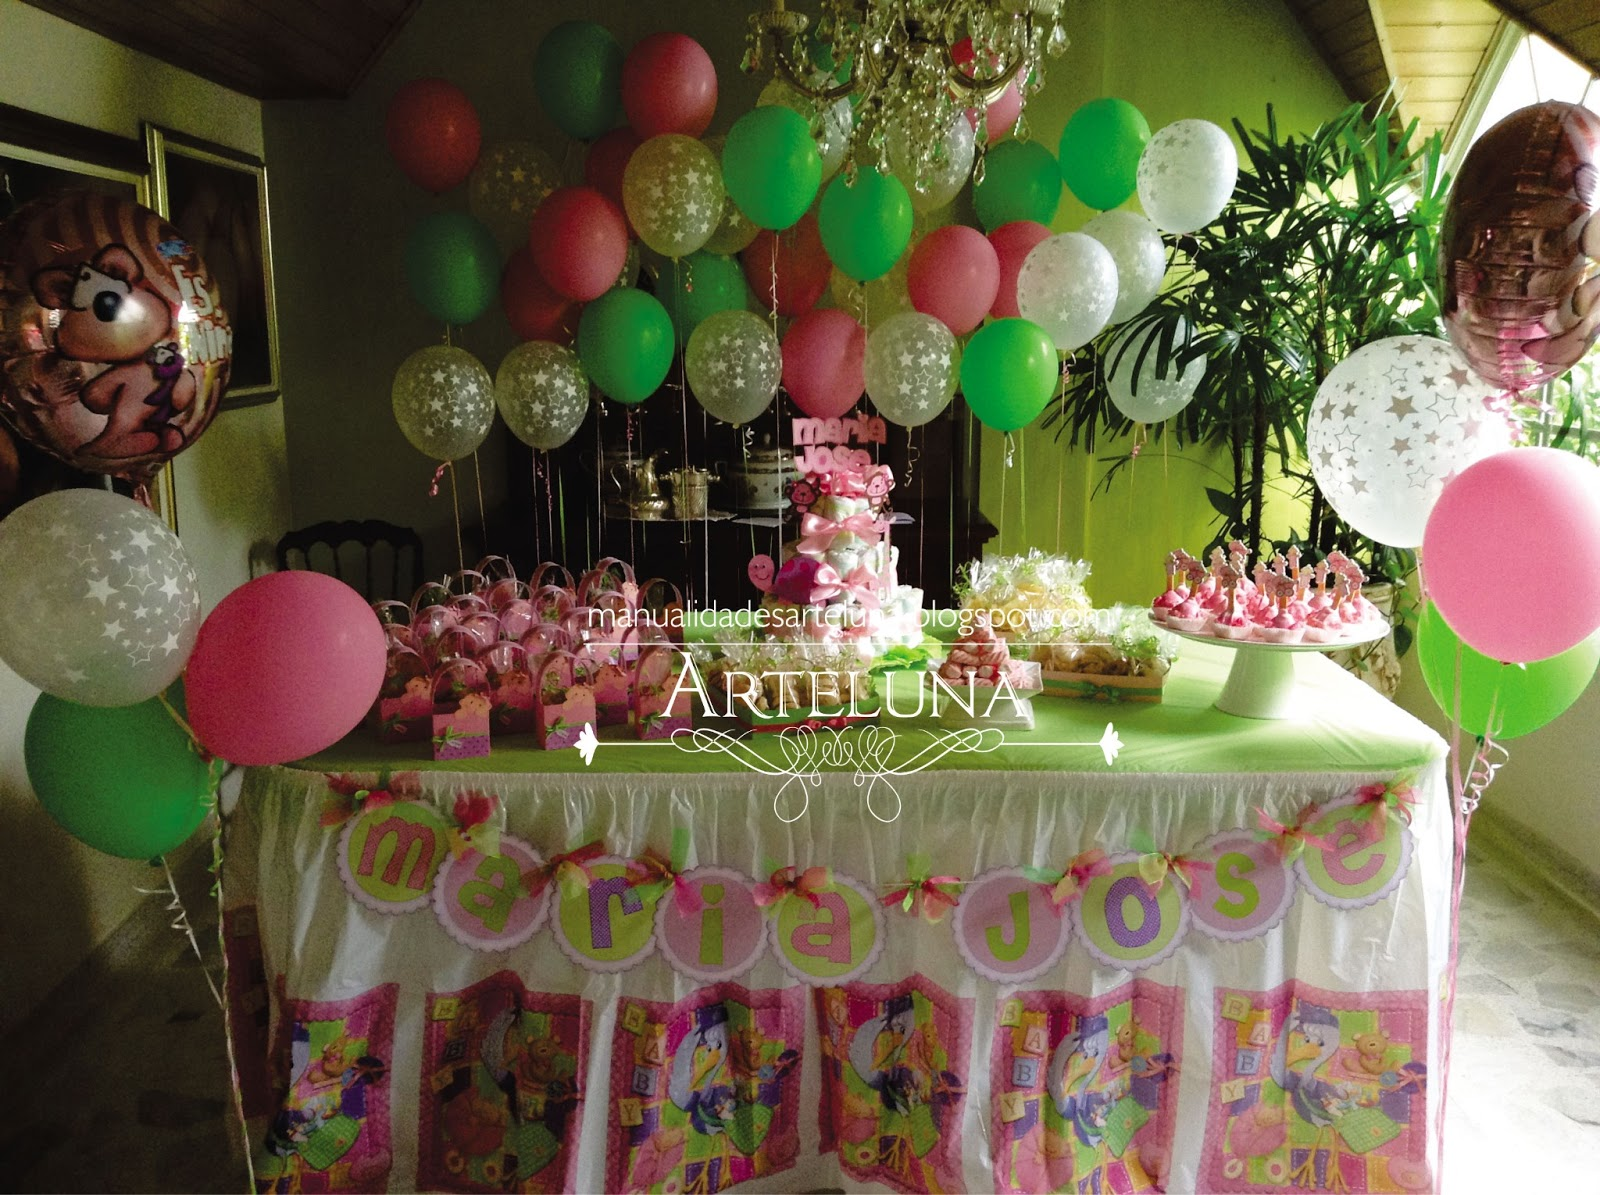 Arte luna decoracion baby shower for Decoracion para pared de baby shower